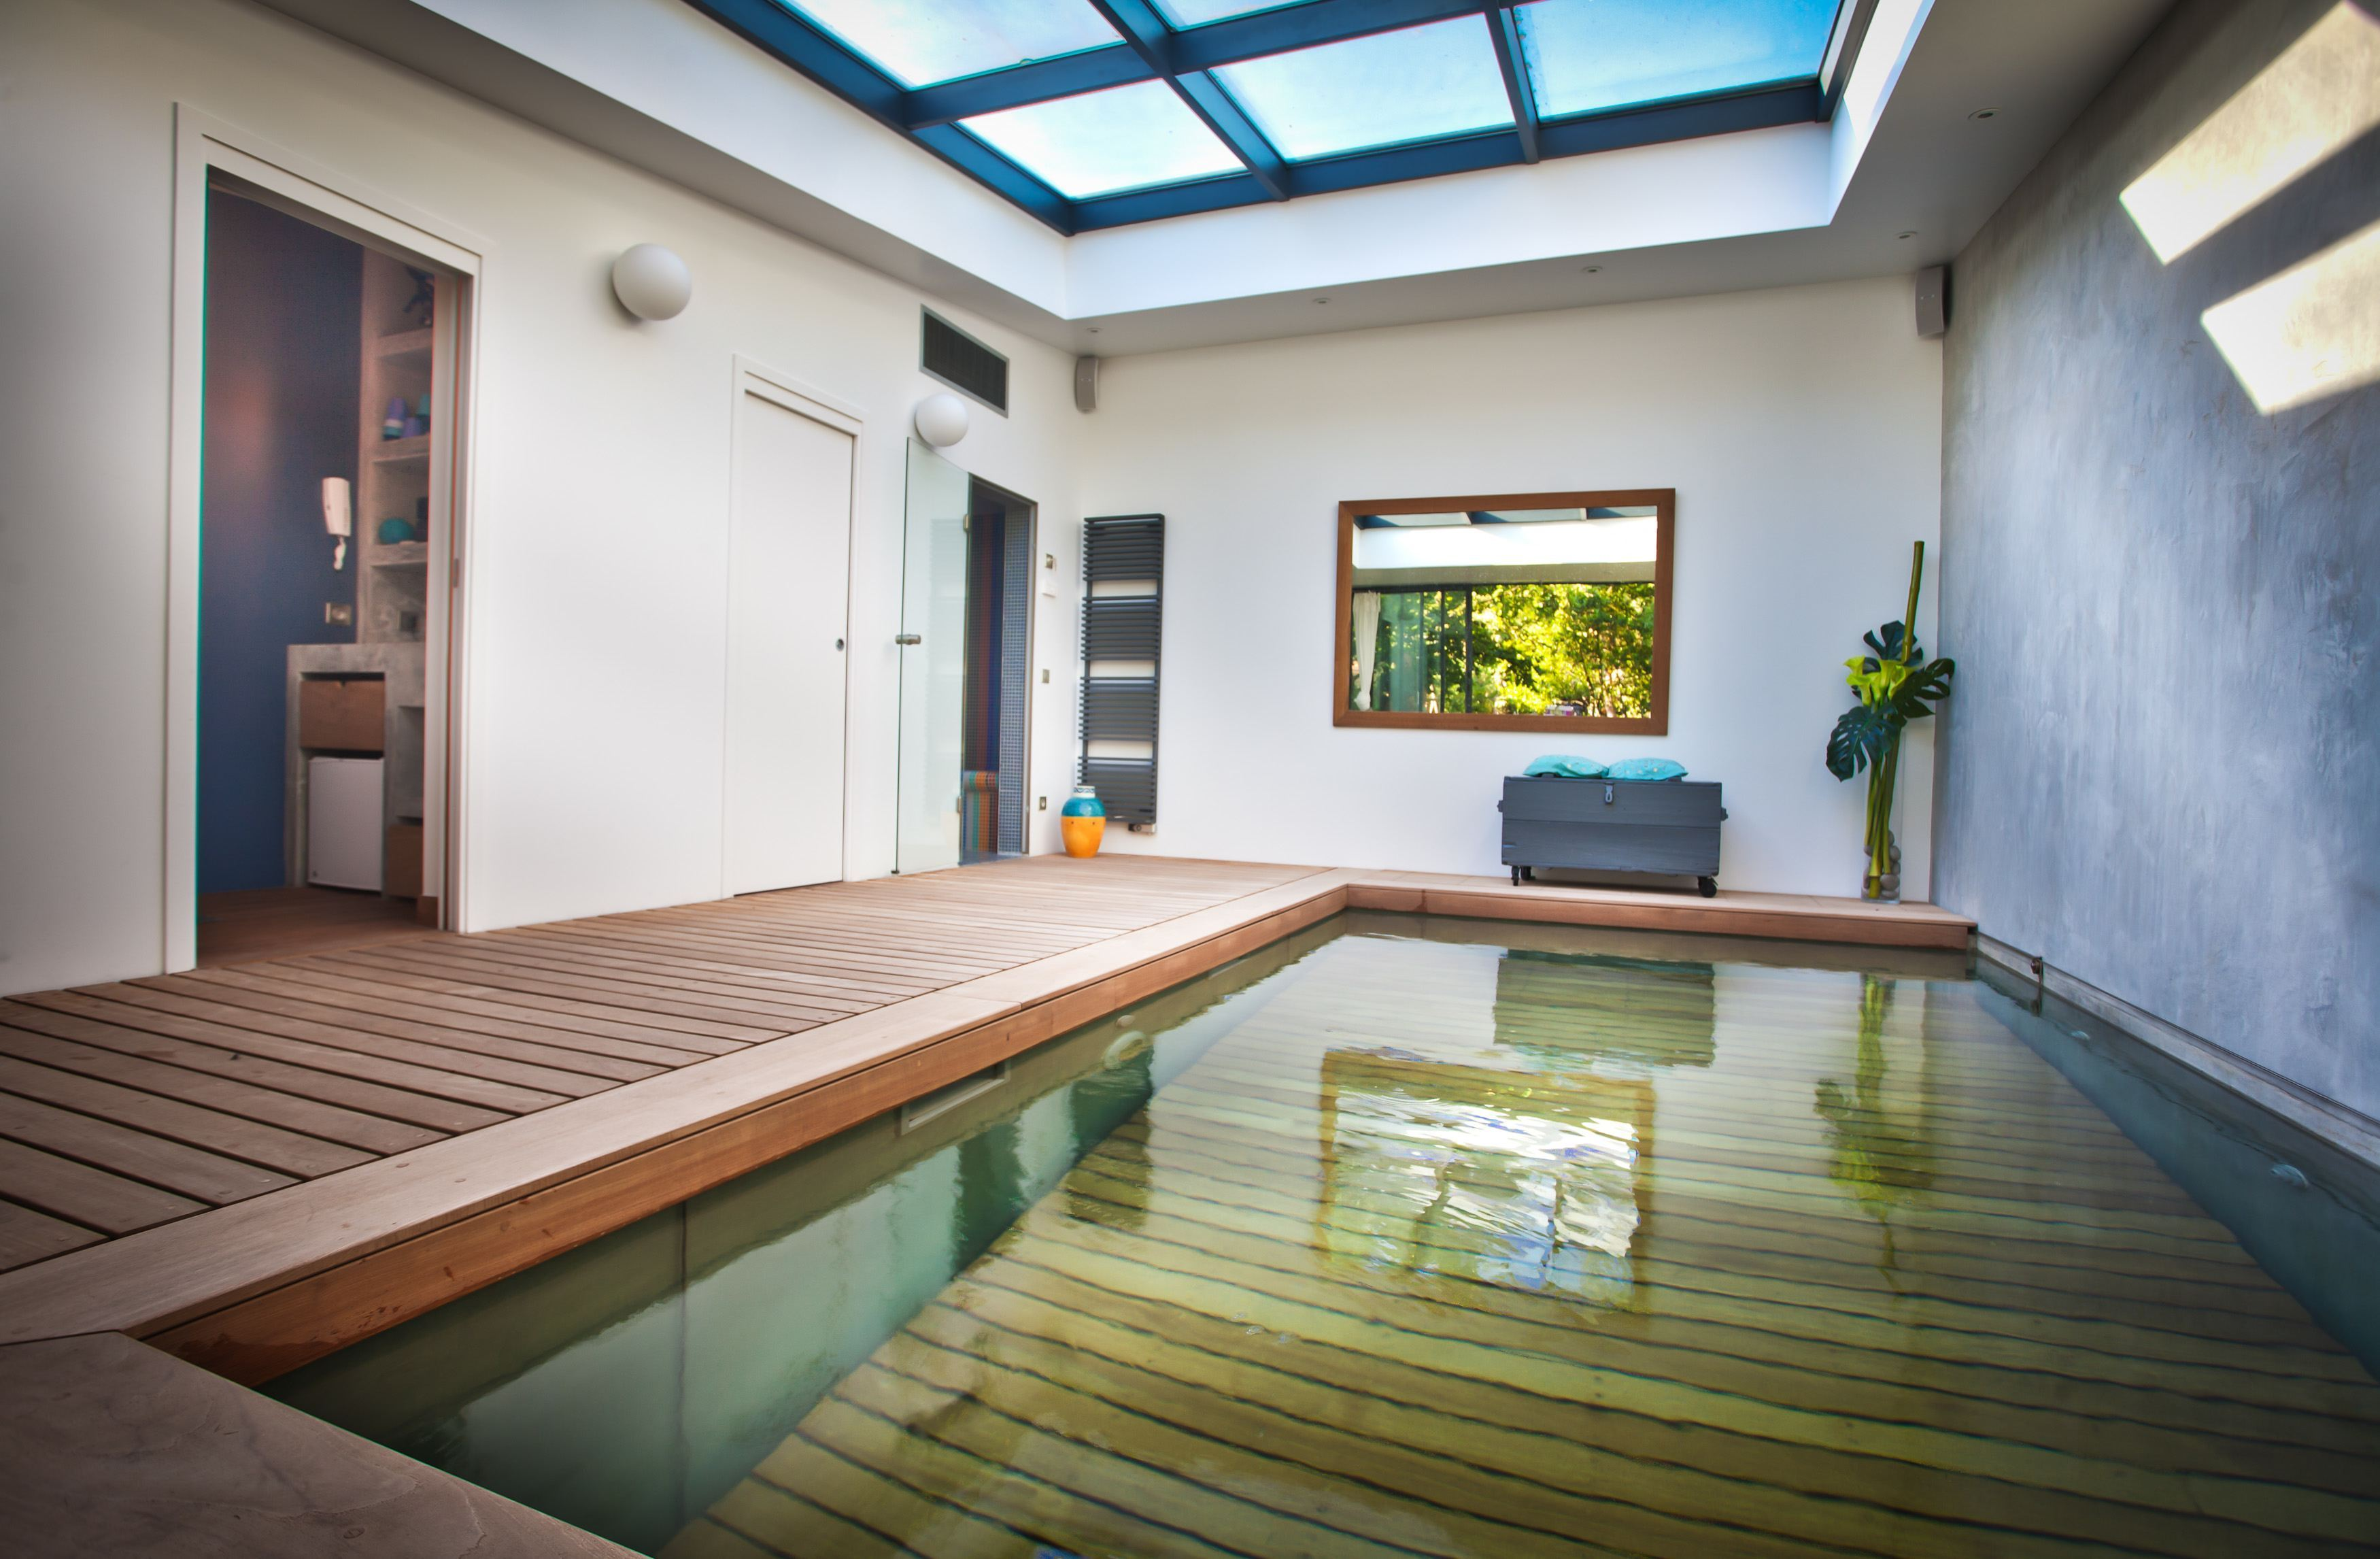 Photos cette piscine couverte donne envie de s 39 installer for Interieur original maison